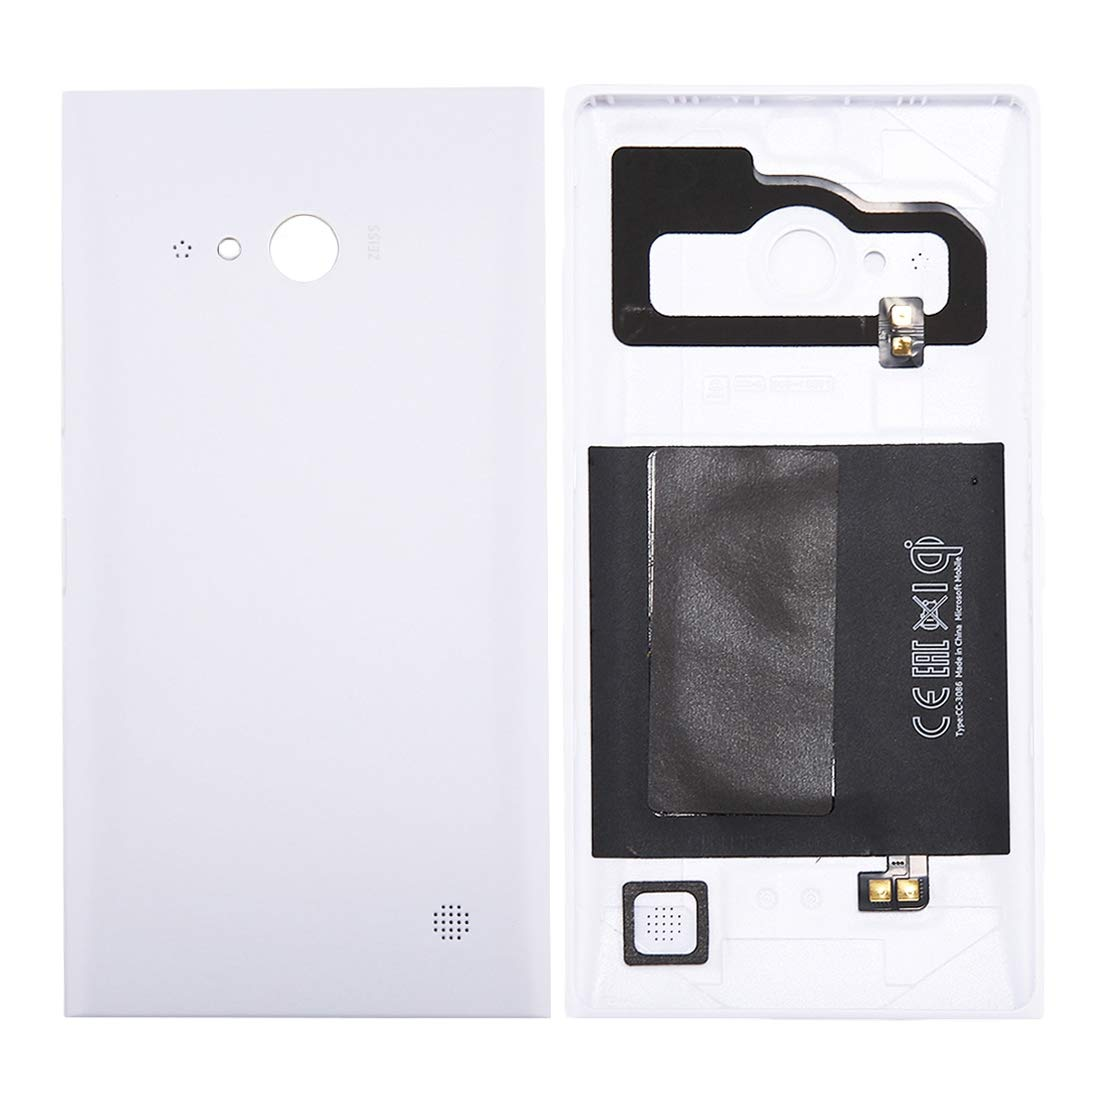 JUNXI Phone Solid Color NFC Battery Back Cover for Nokia Lumia 735 (Black) Classic and Fashion (Color : White) by JUNXI